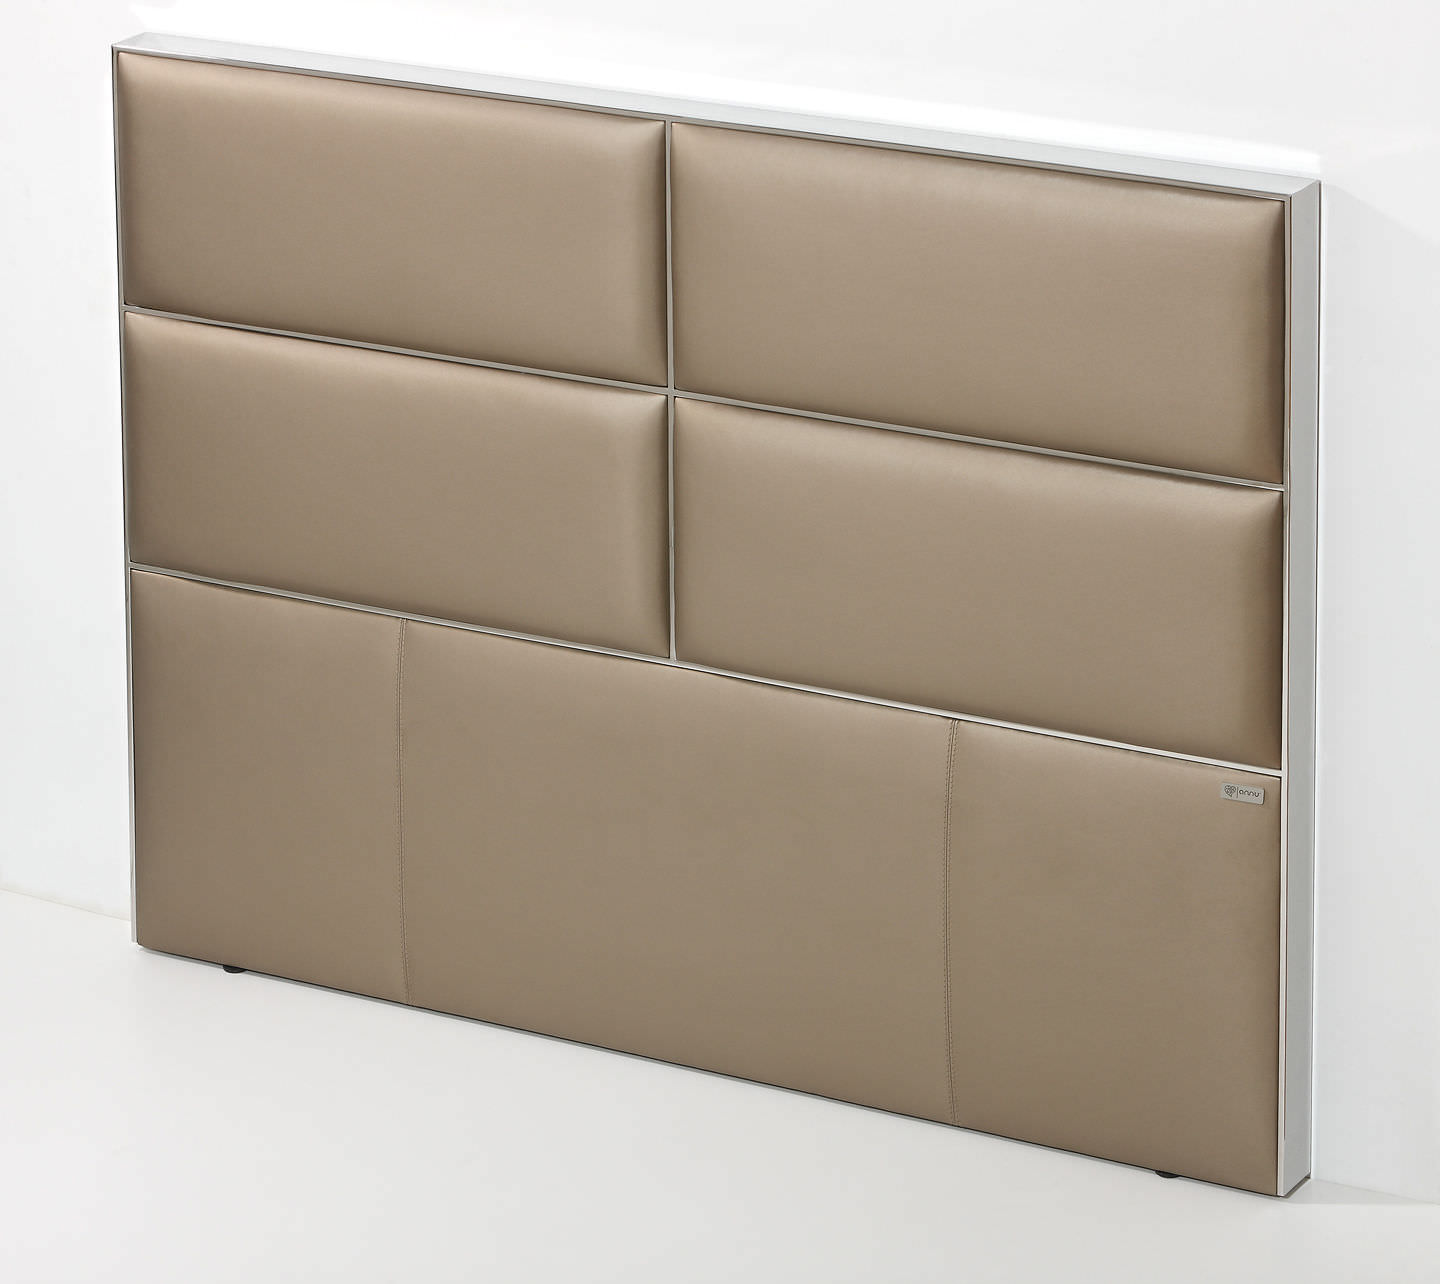 Double Bed Headboard Contemporary Fabric Upholstered Dreams